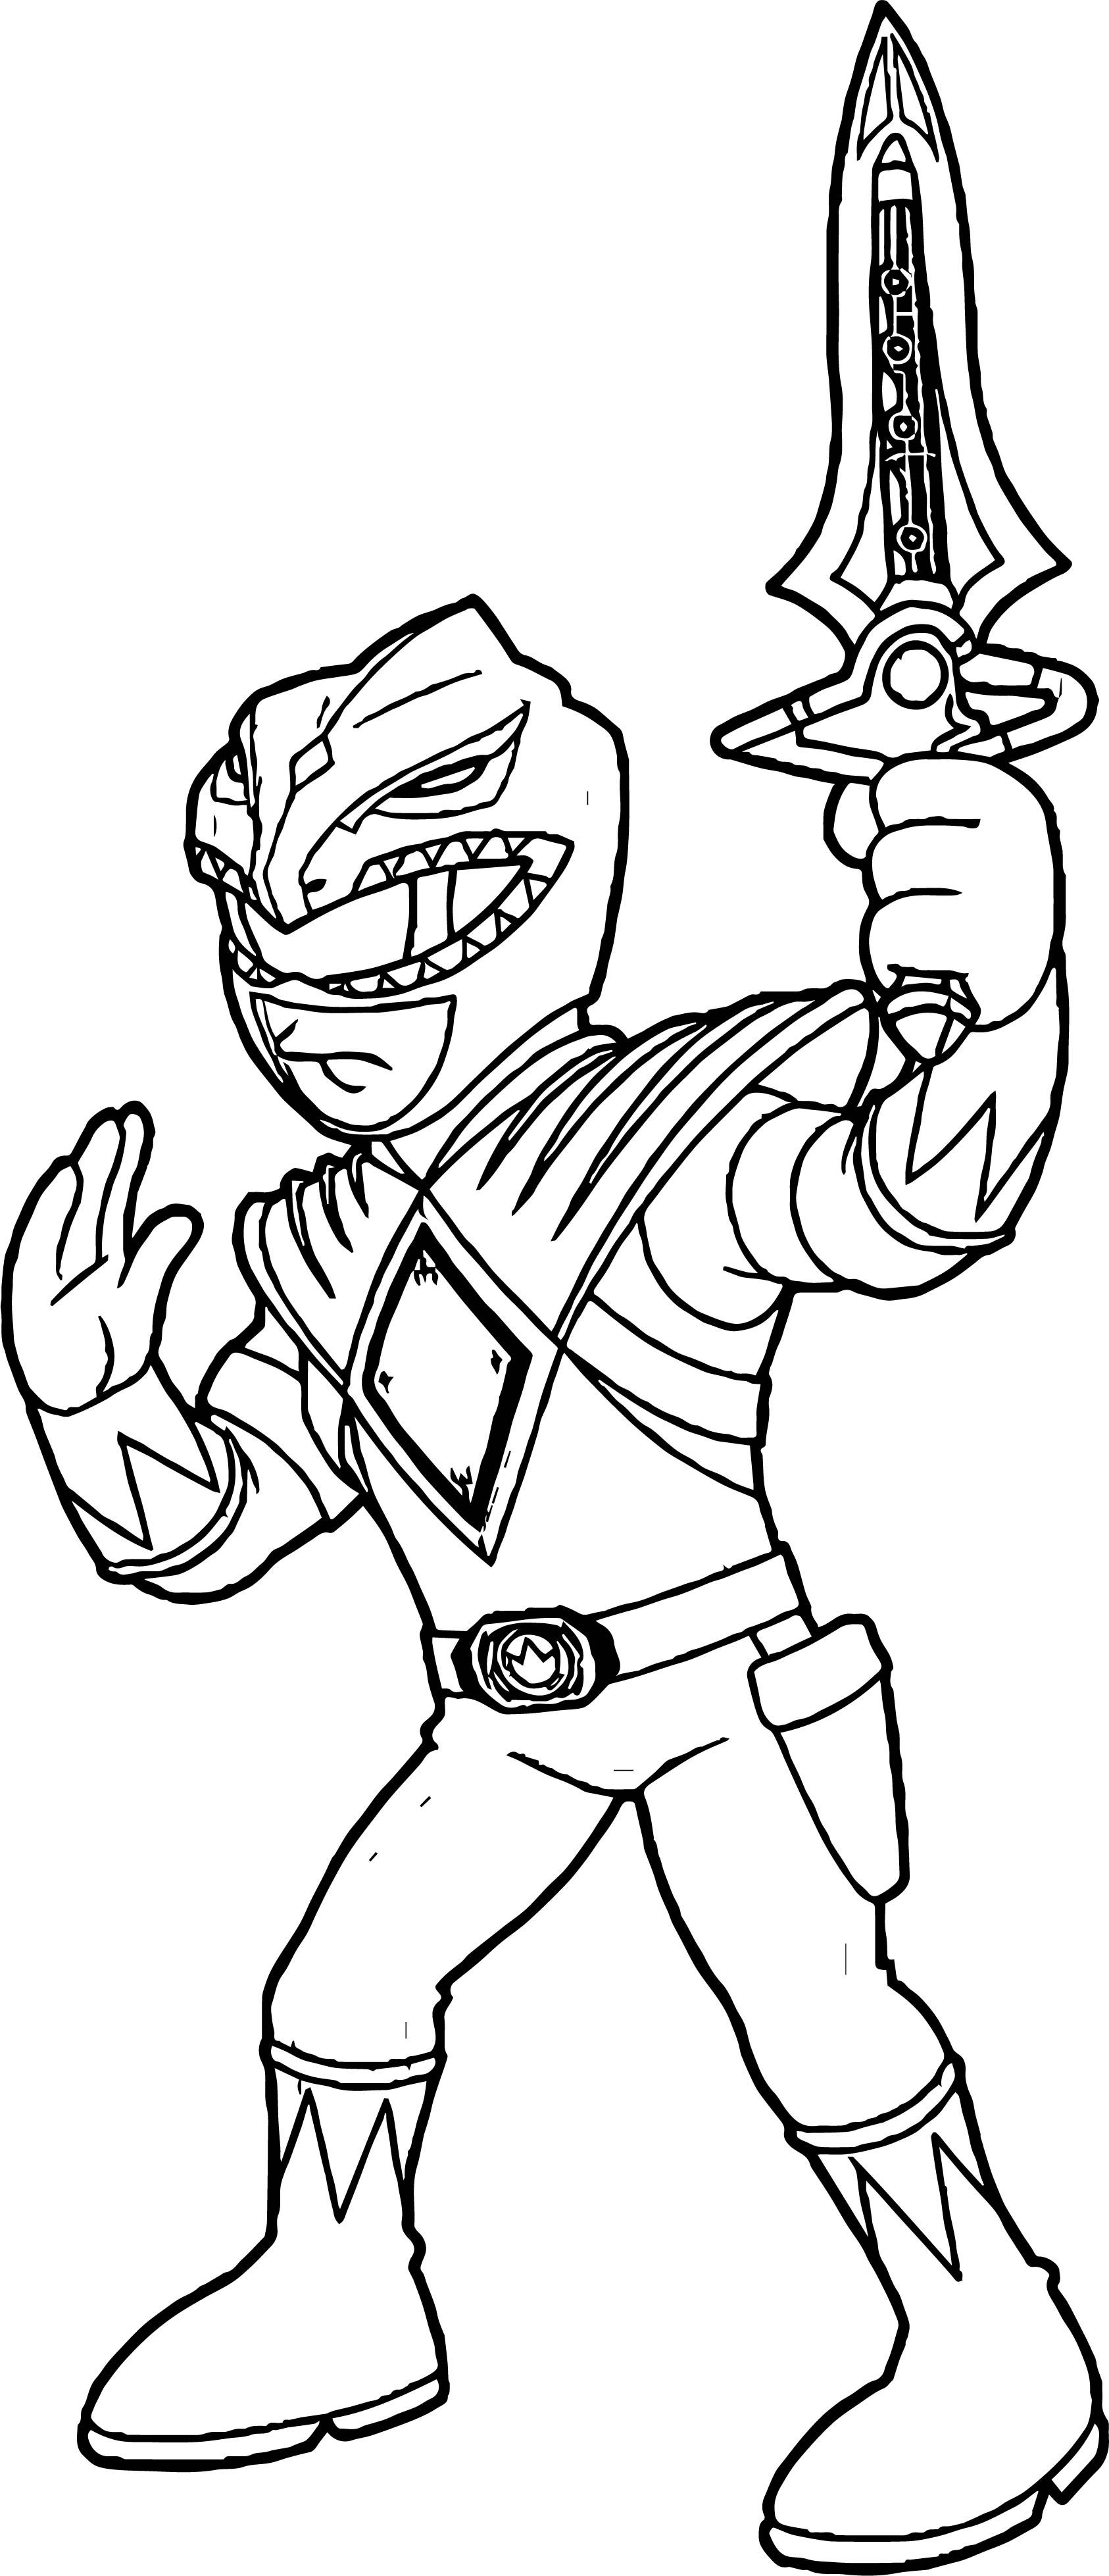 coloring power ranger mask blue coloring pages power rangers 2020 power ranger power mask coloring